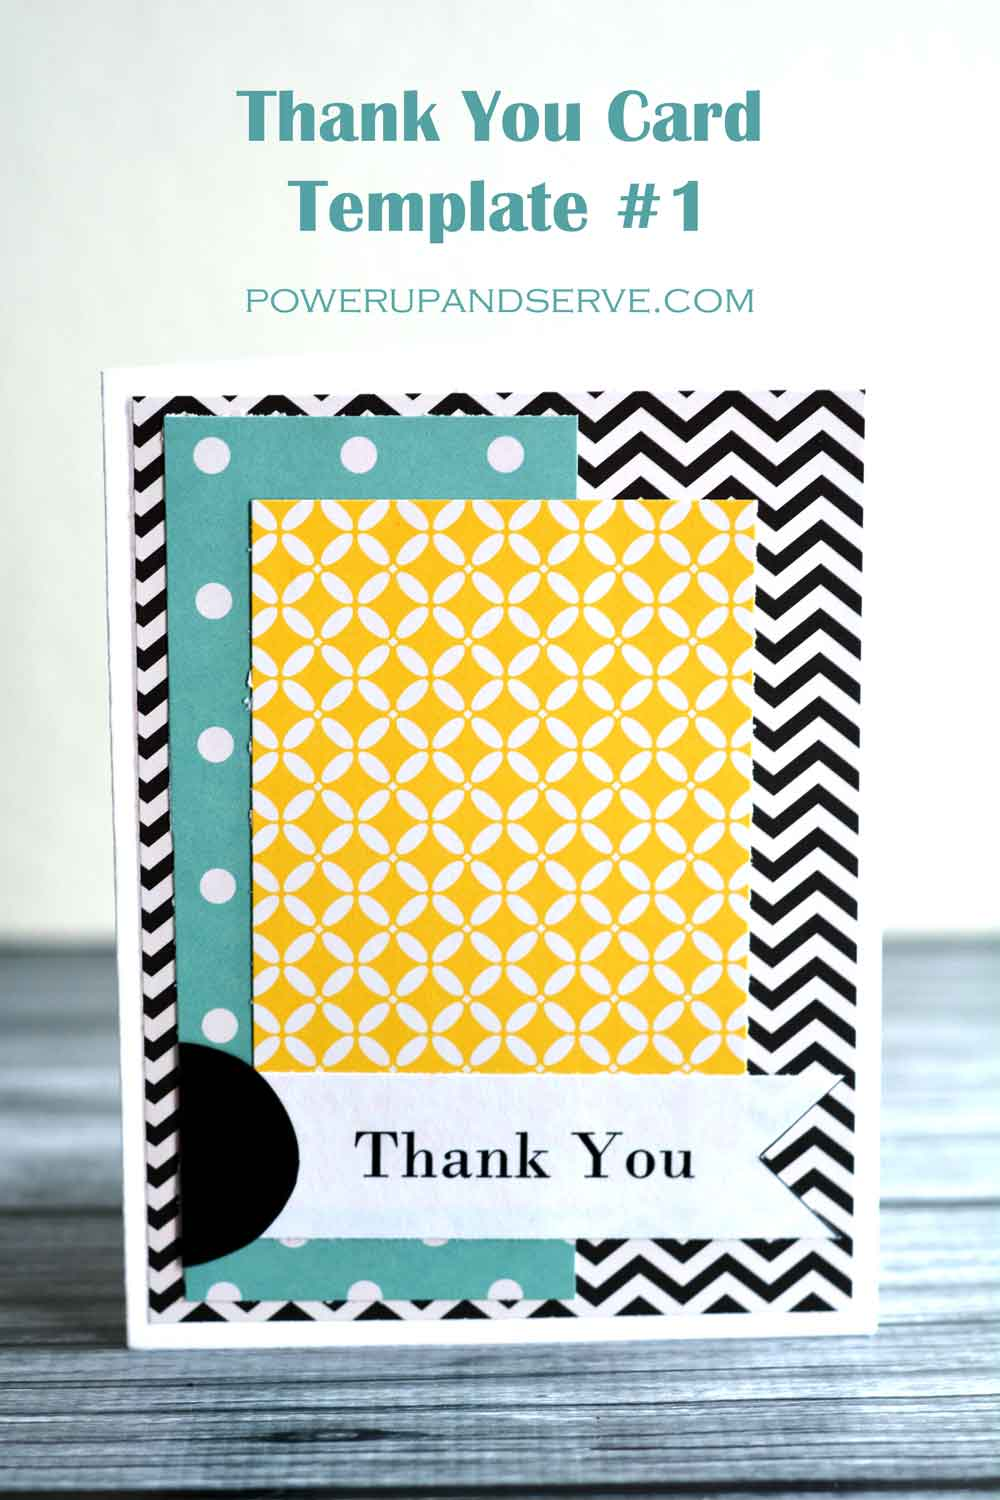 thank you card template 1 power up and serve. Black Bedroom Furniture Sets. Home Design Ideas